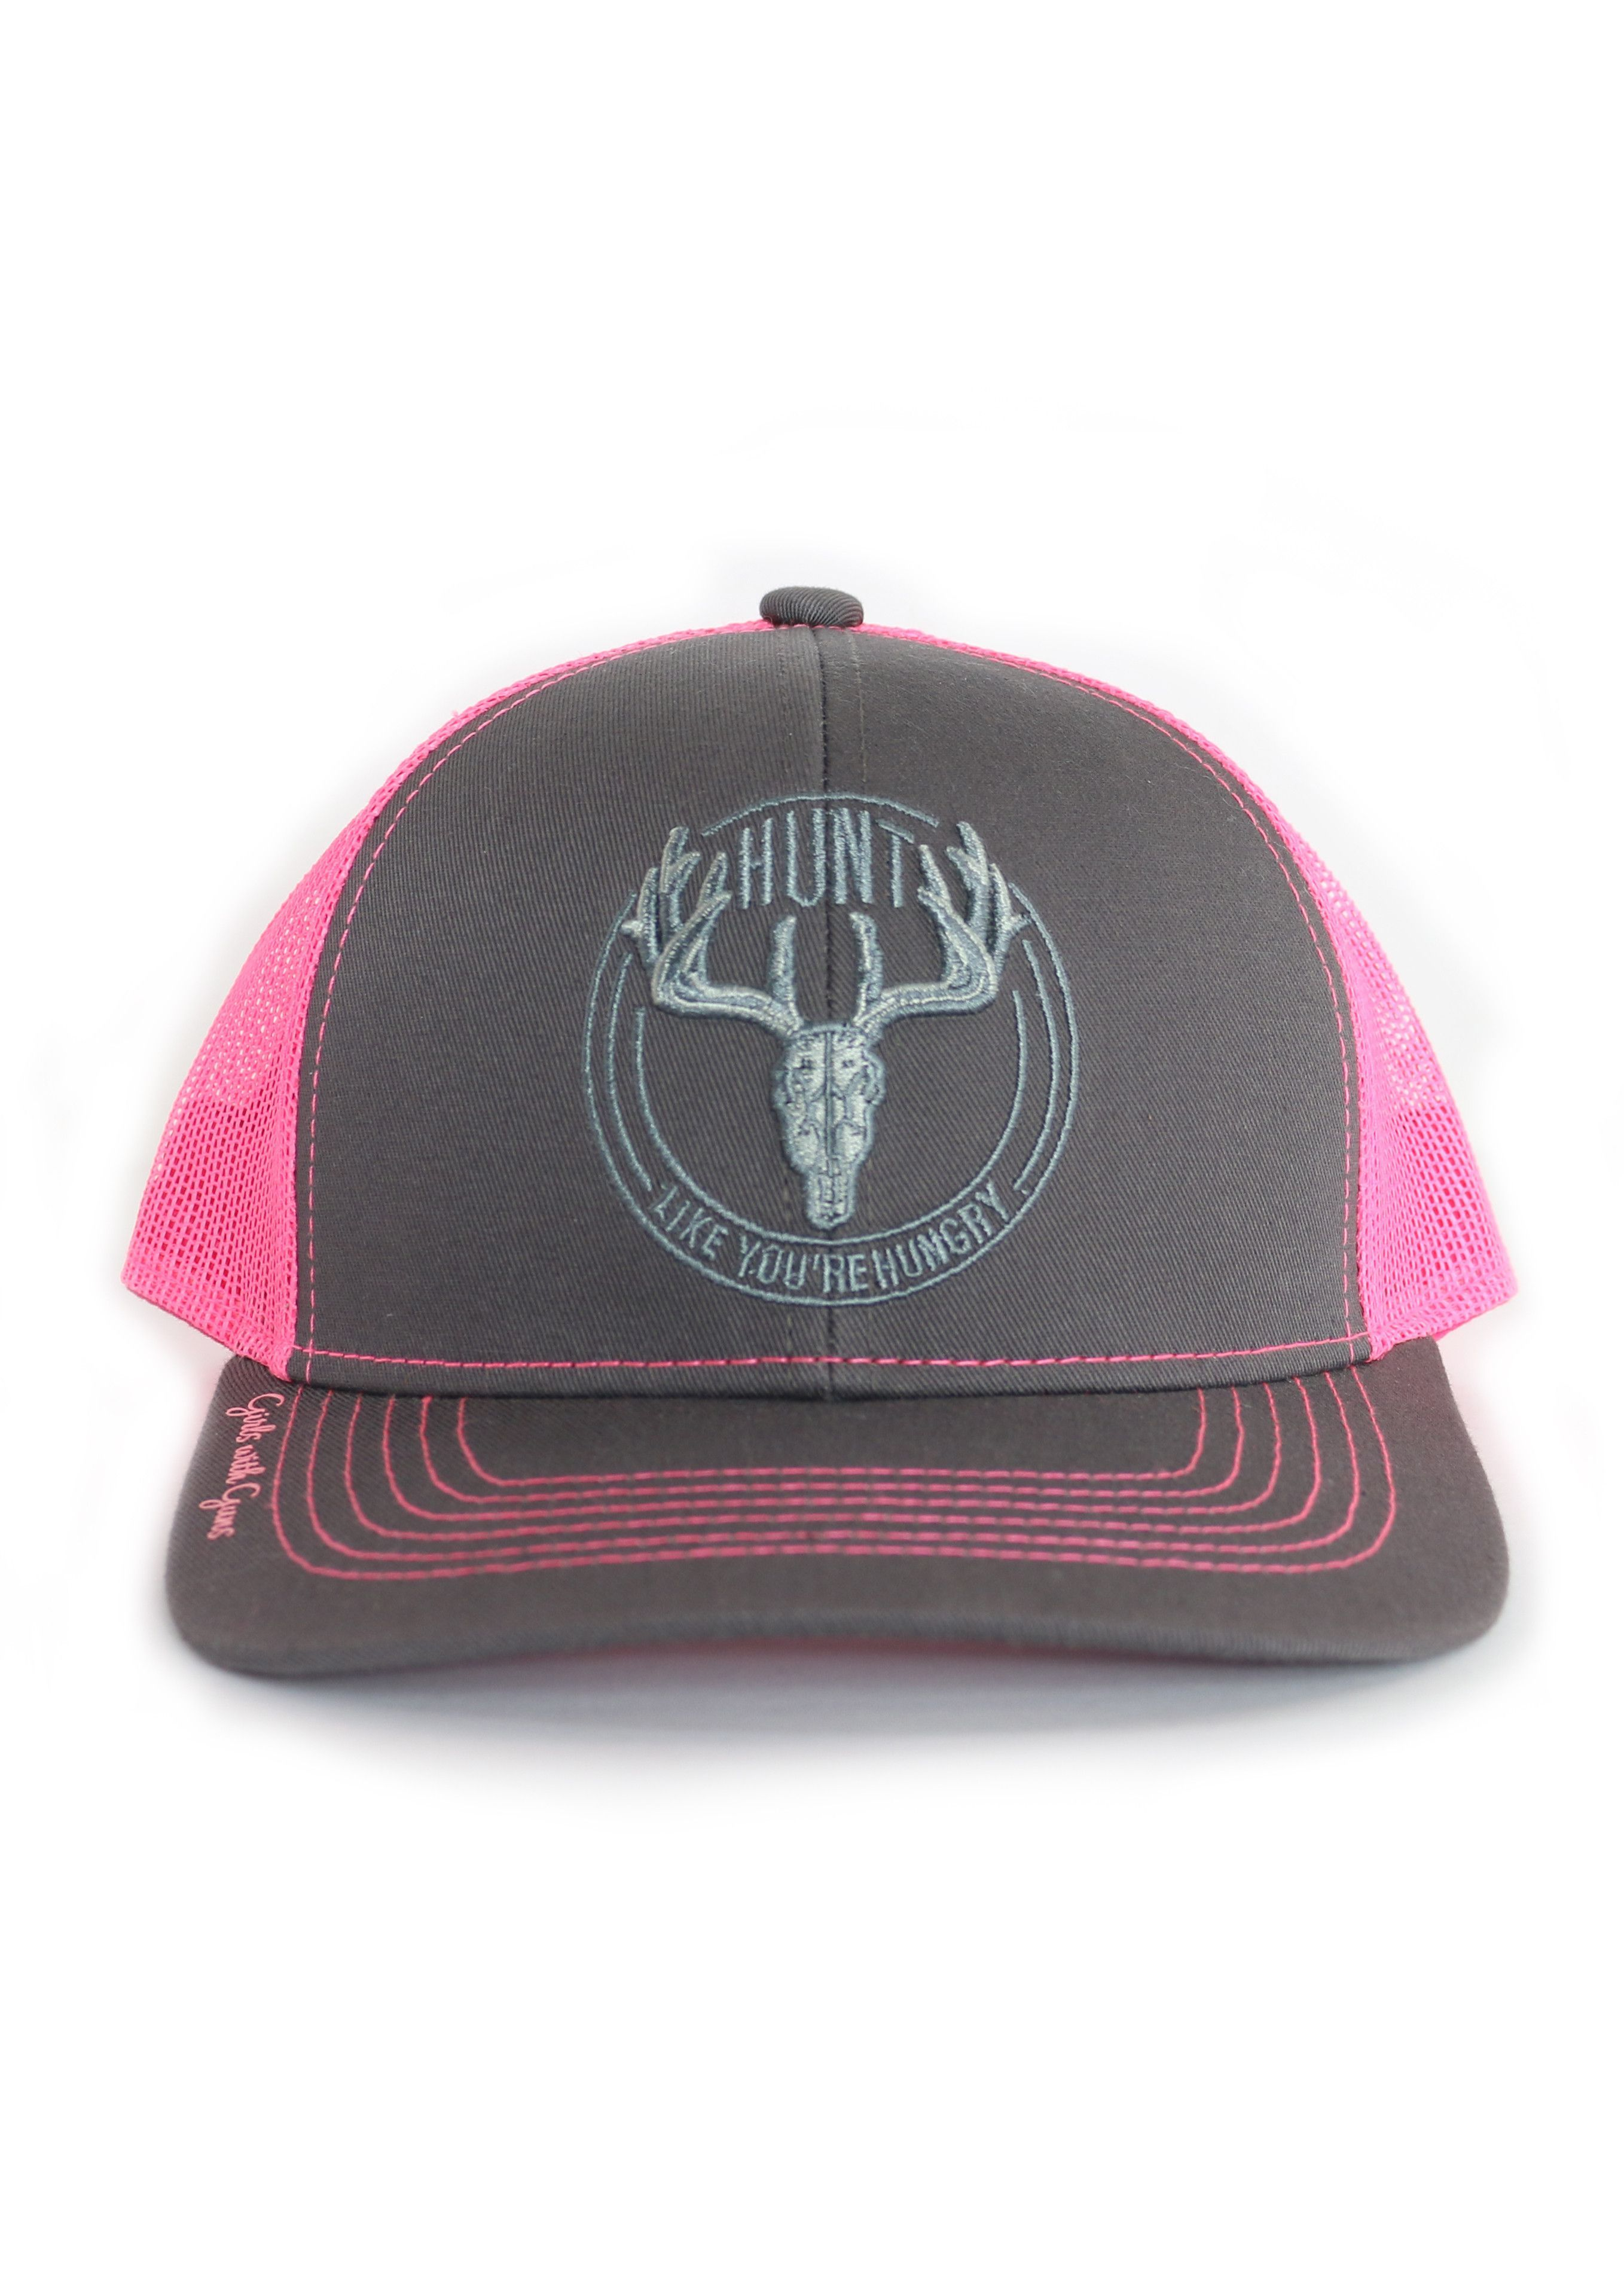 Hunt Like You're Hungry Hat Hats, Guns clothing